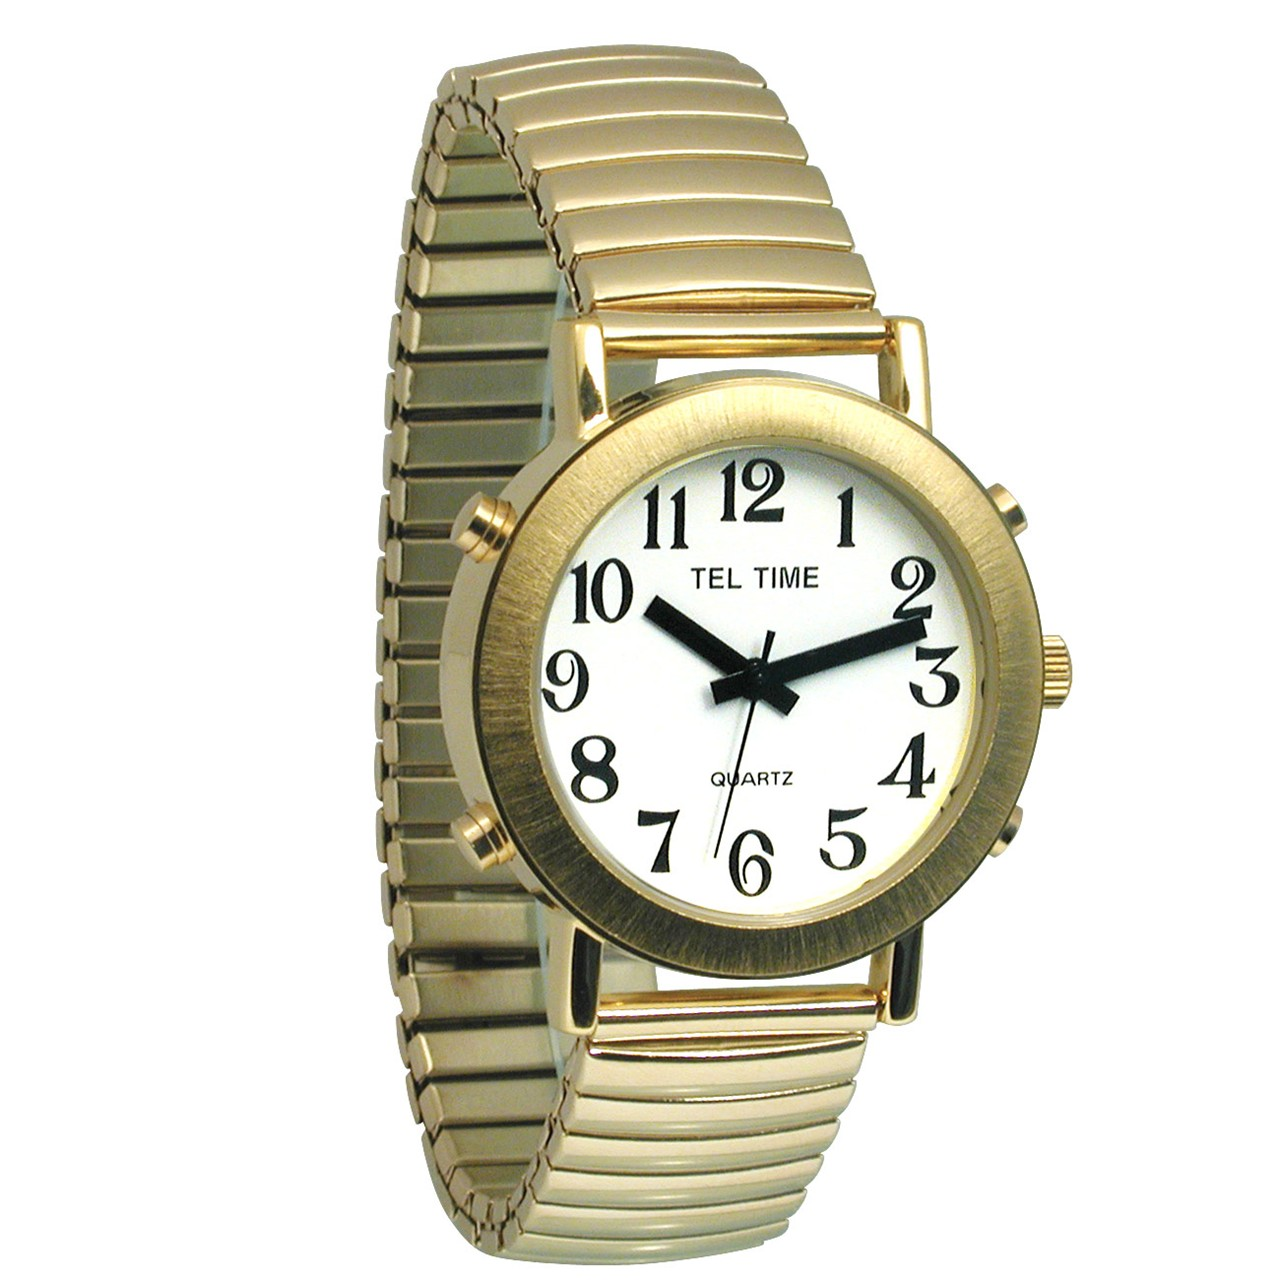 Mens Tel-Time Gold-Tone-Colored Talking Watch with White ...